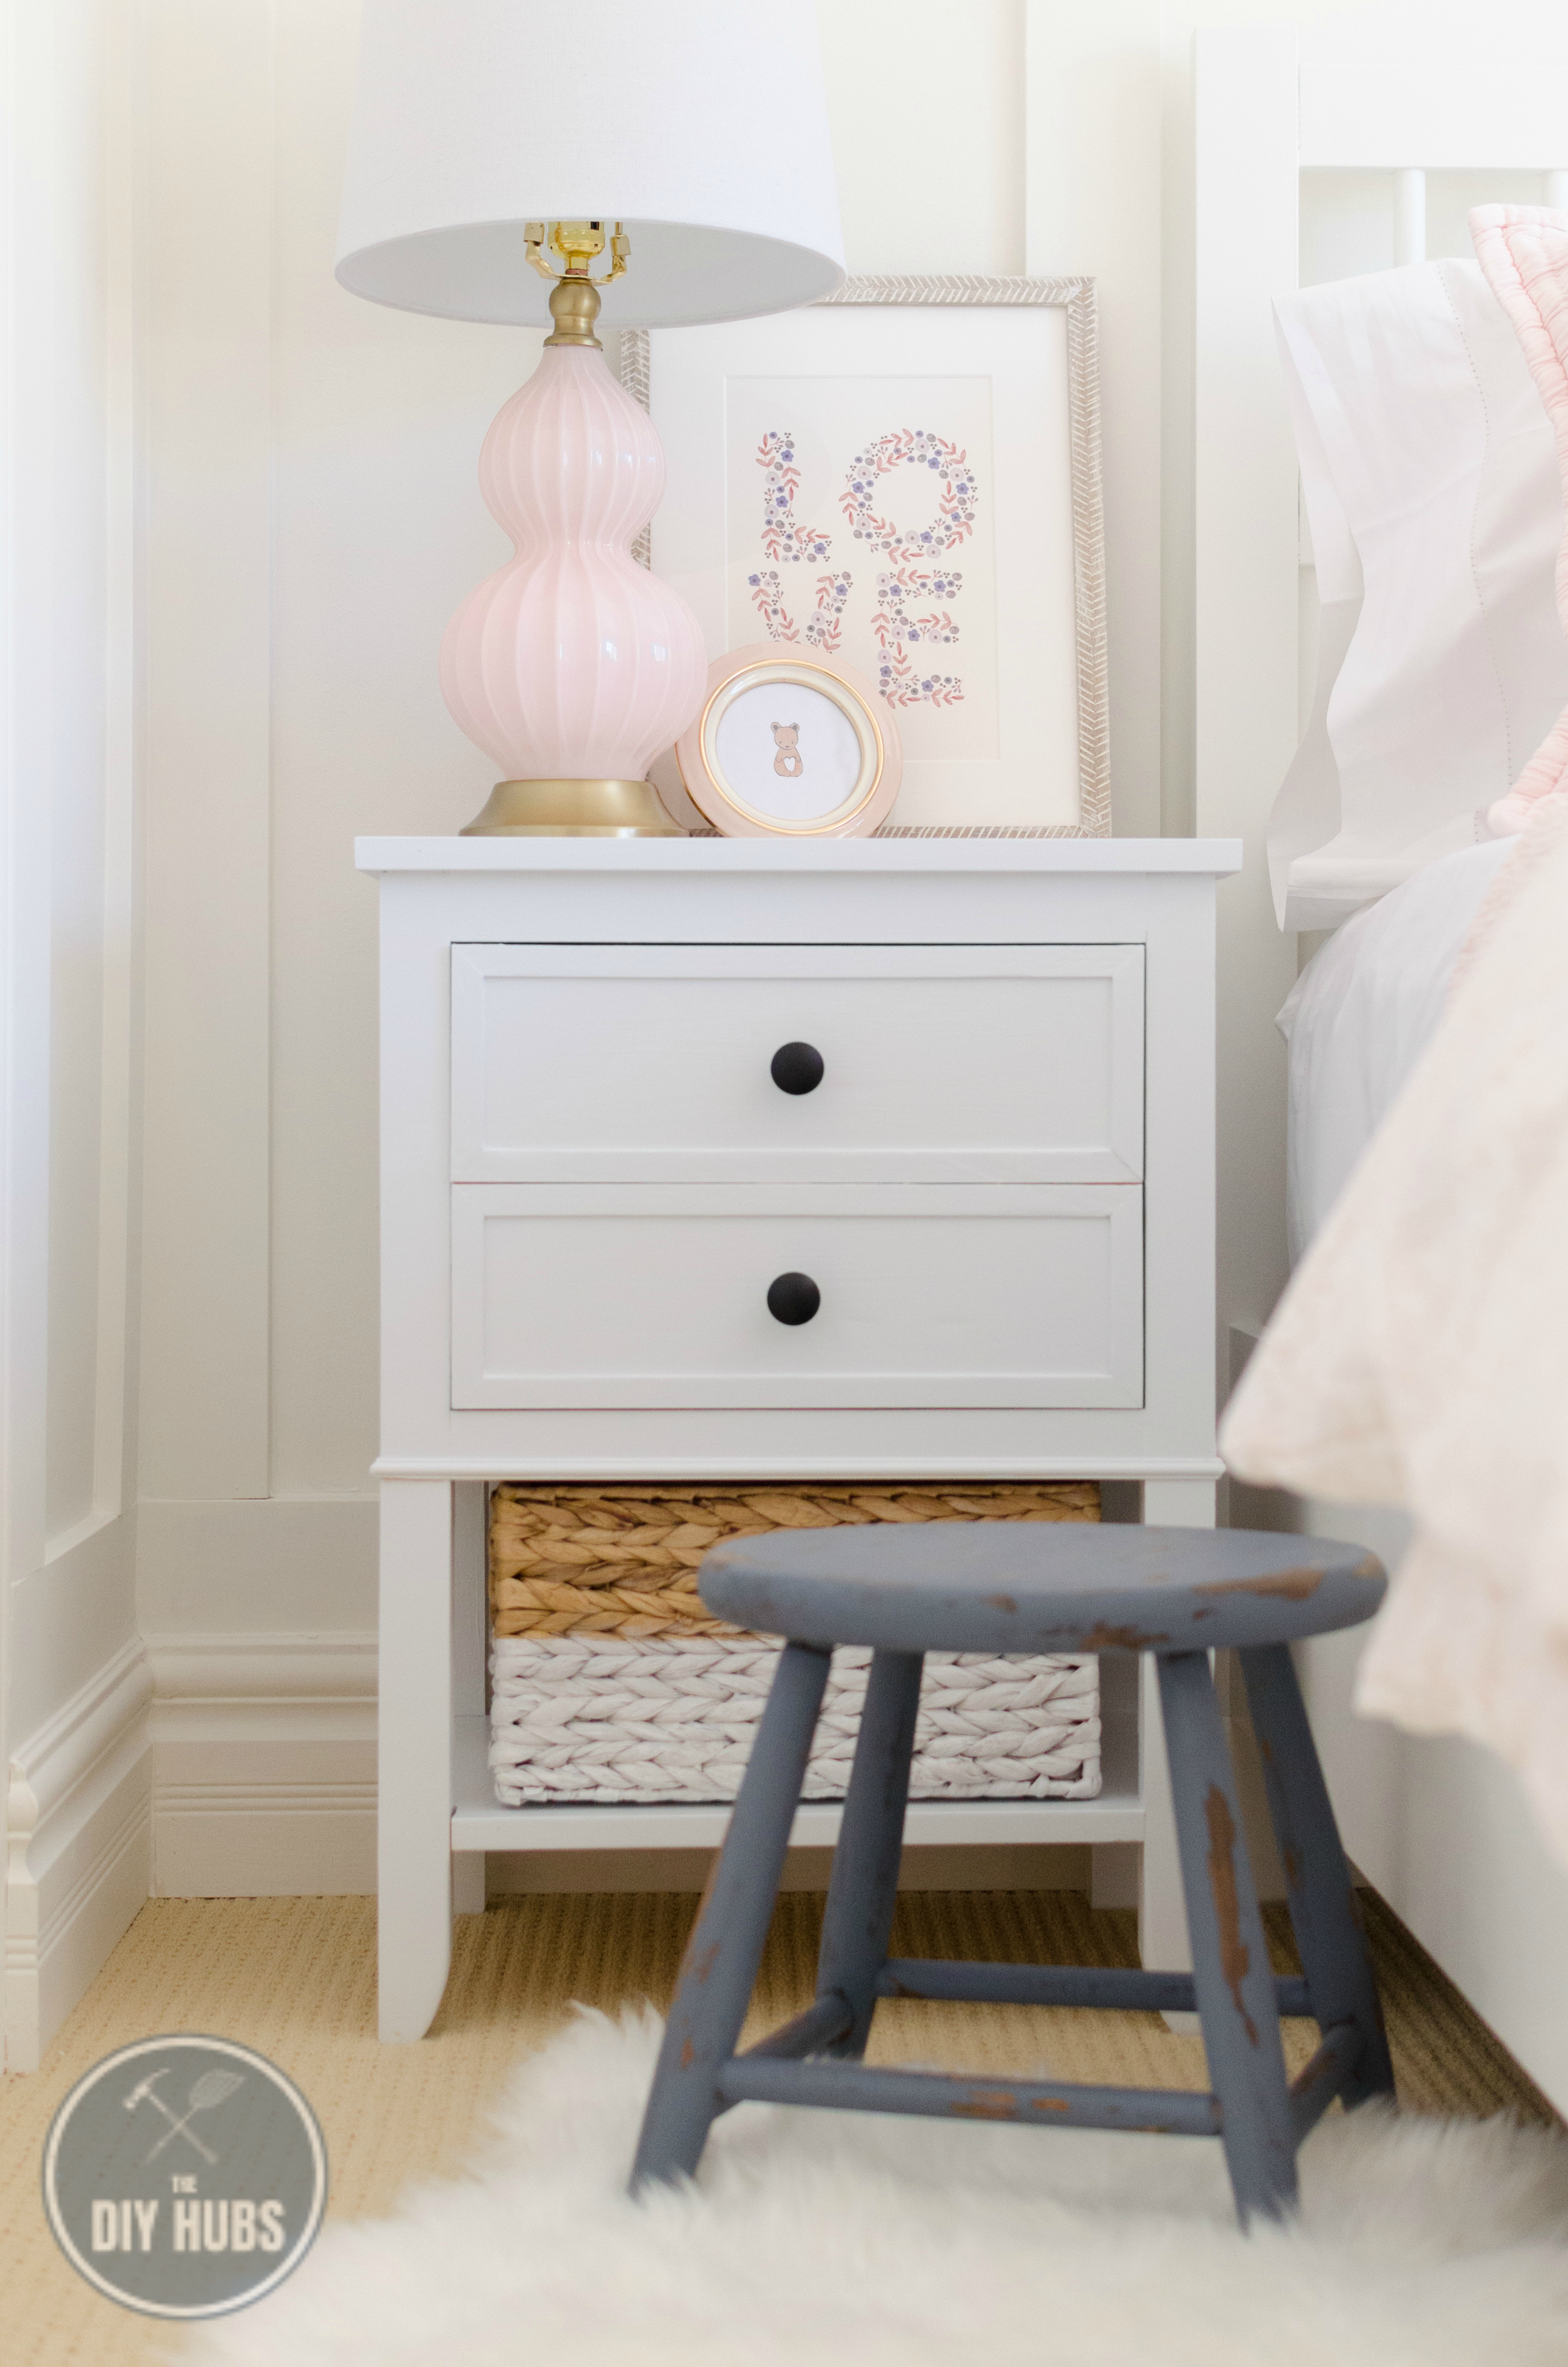 Free end table plans the diy hubs for Free online table planner